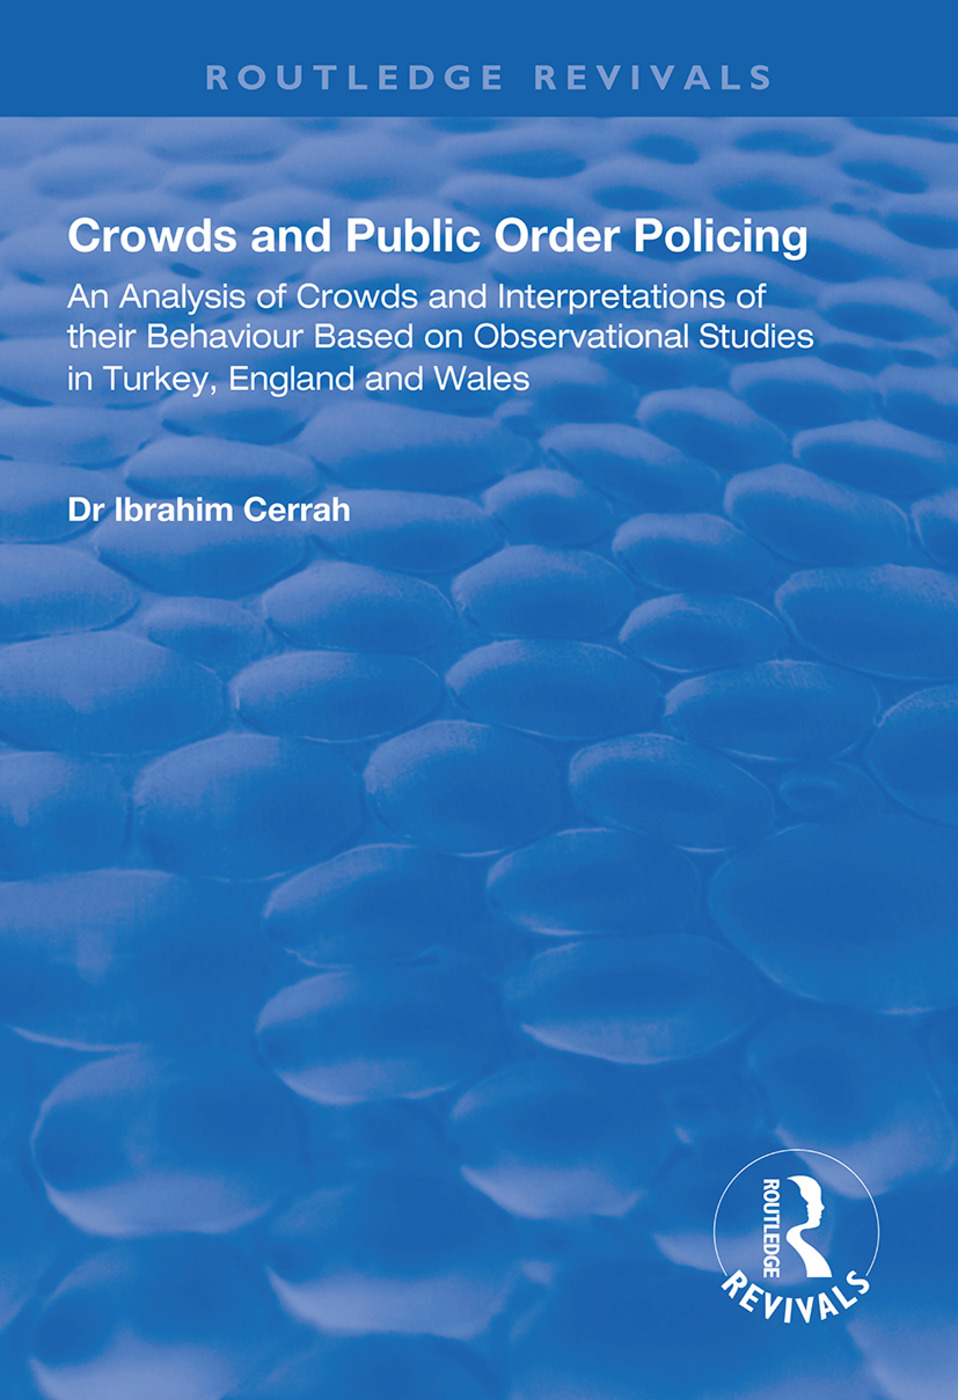 Crowds and Public Order Policing: An Analysis of Crowds and Interpretations of Their Behaviour Based on Observational Studies in Turkey, England and Wales book cover